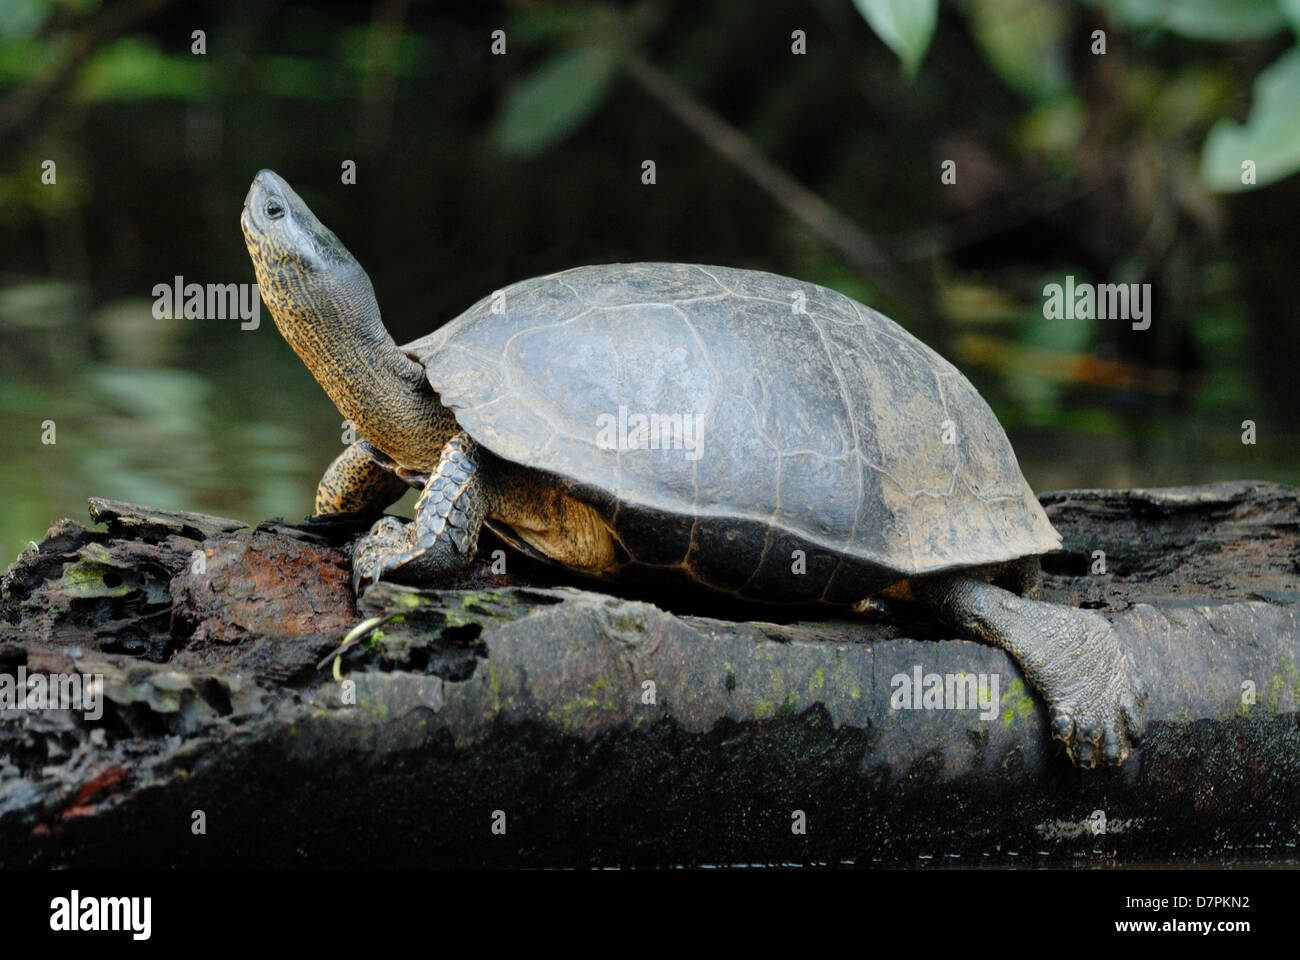 Black River Turtle (Rhinoclemmys funerea) in Tortuguero National Park, Costa Rica. - Stock Image